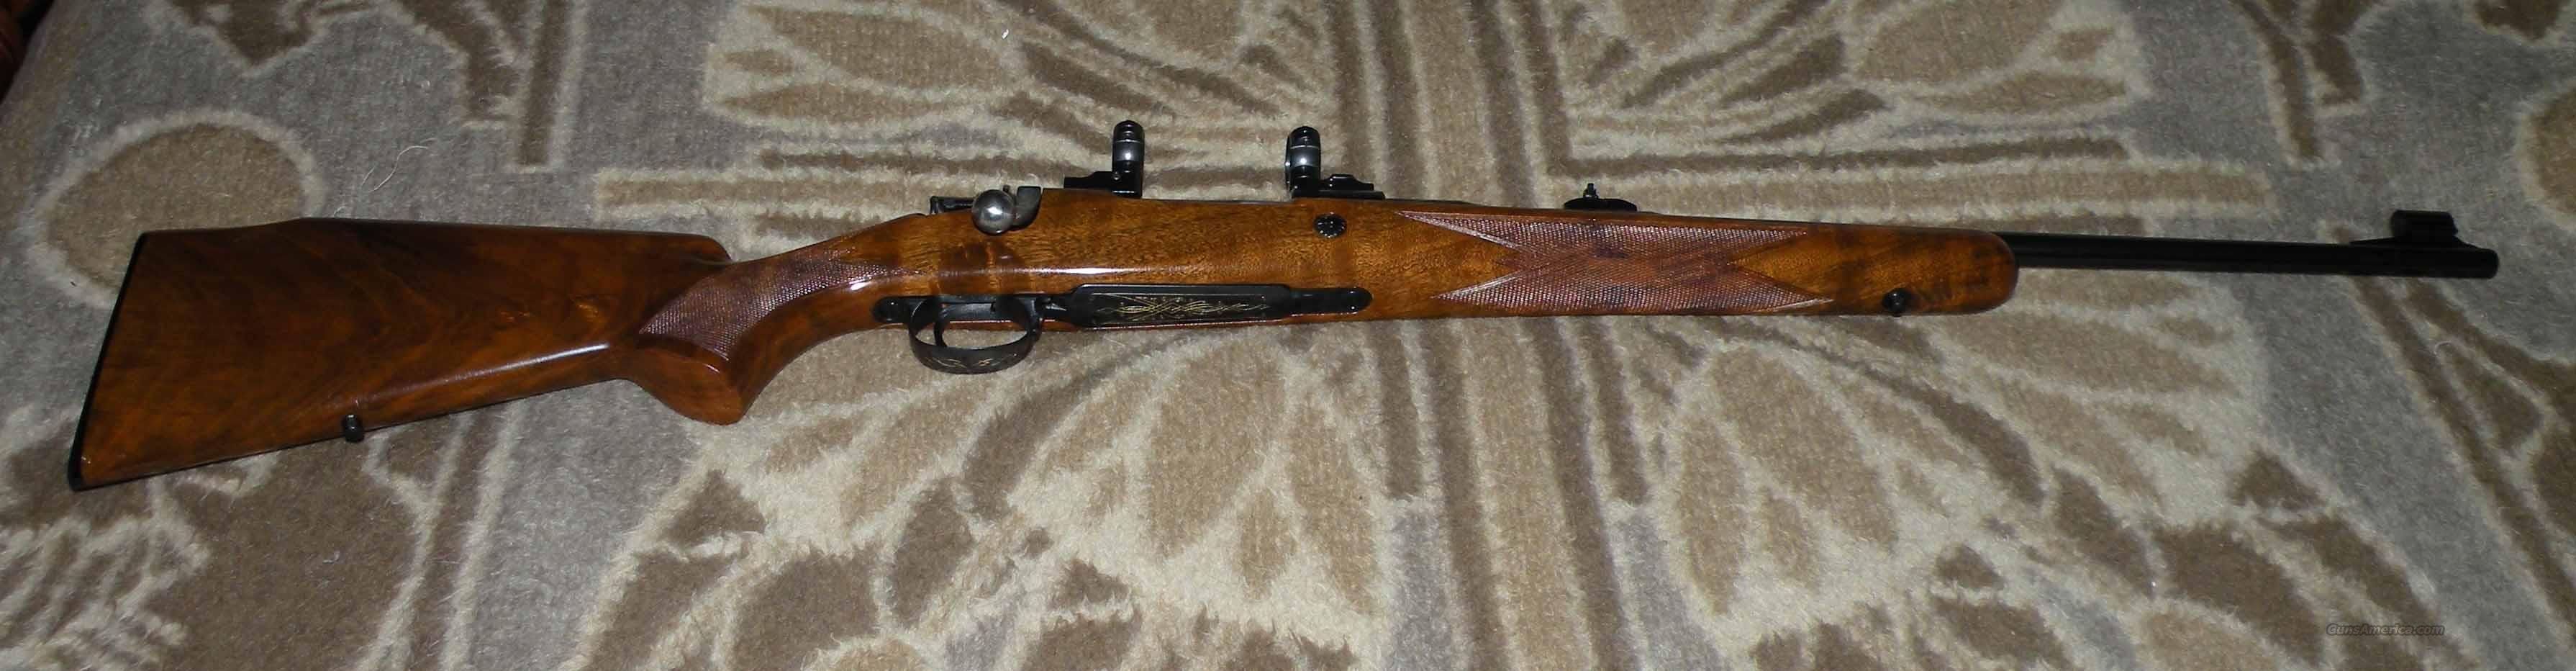 Browning Safari 30-06 Belgium - MINT  Guns > Rifles > Browning Rifles > Bolt Action > Hunting > Blue